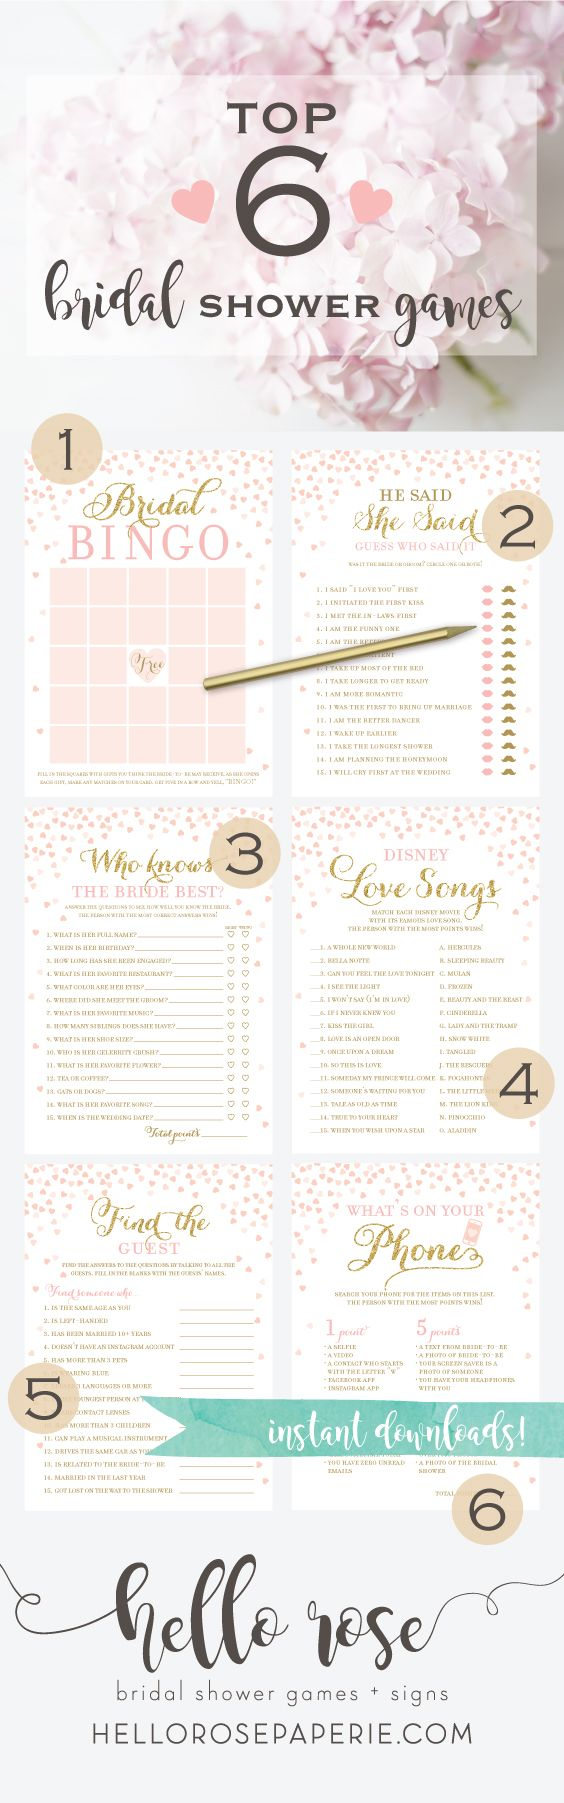 top 6 bridal shower games you need at your bridal shower they are printable instant downloads just print cut and play easy peasy hello rose paperie